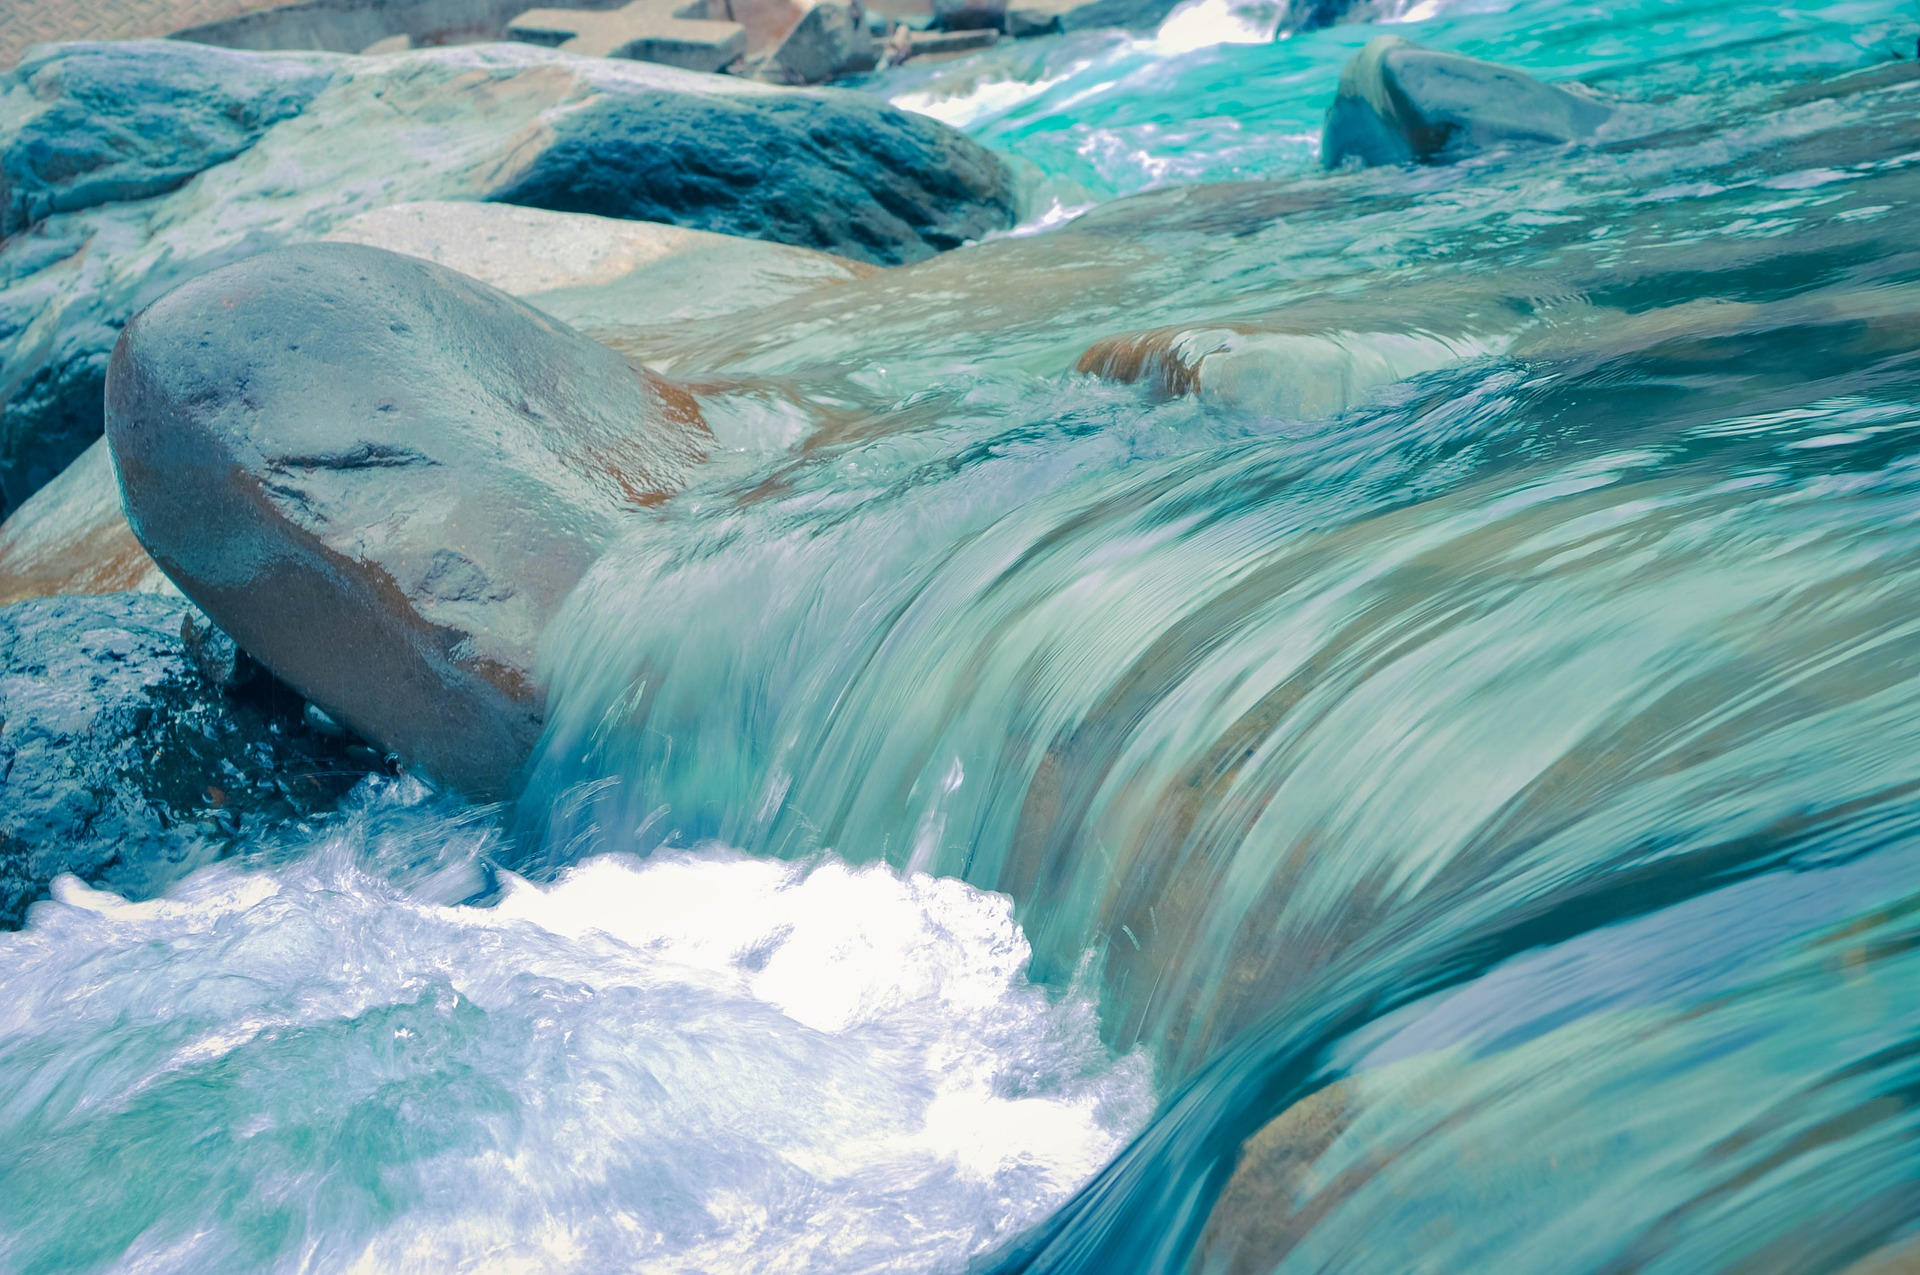 Picture of turbulent water. Image by Free-Photos from Pixabay